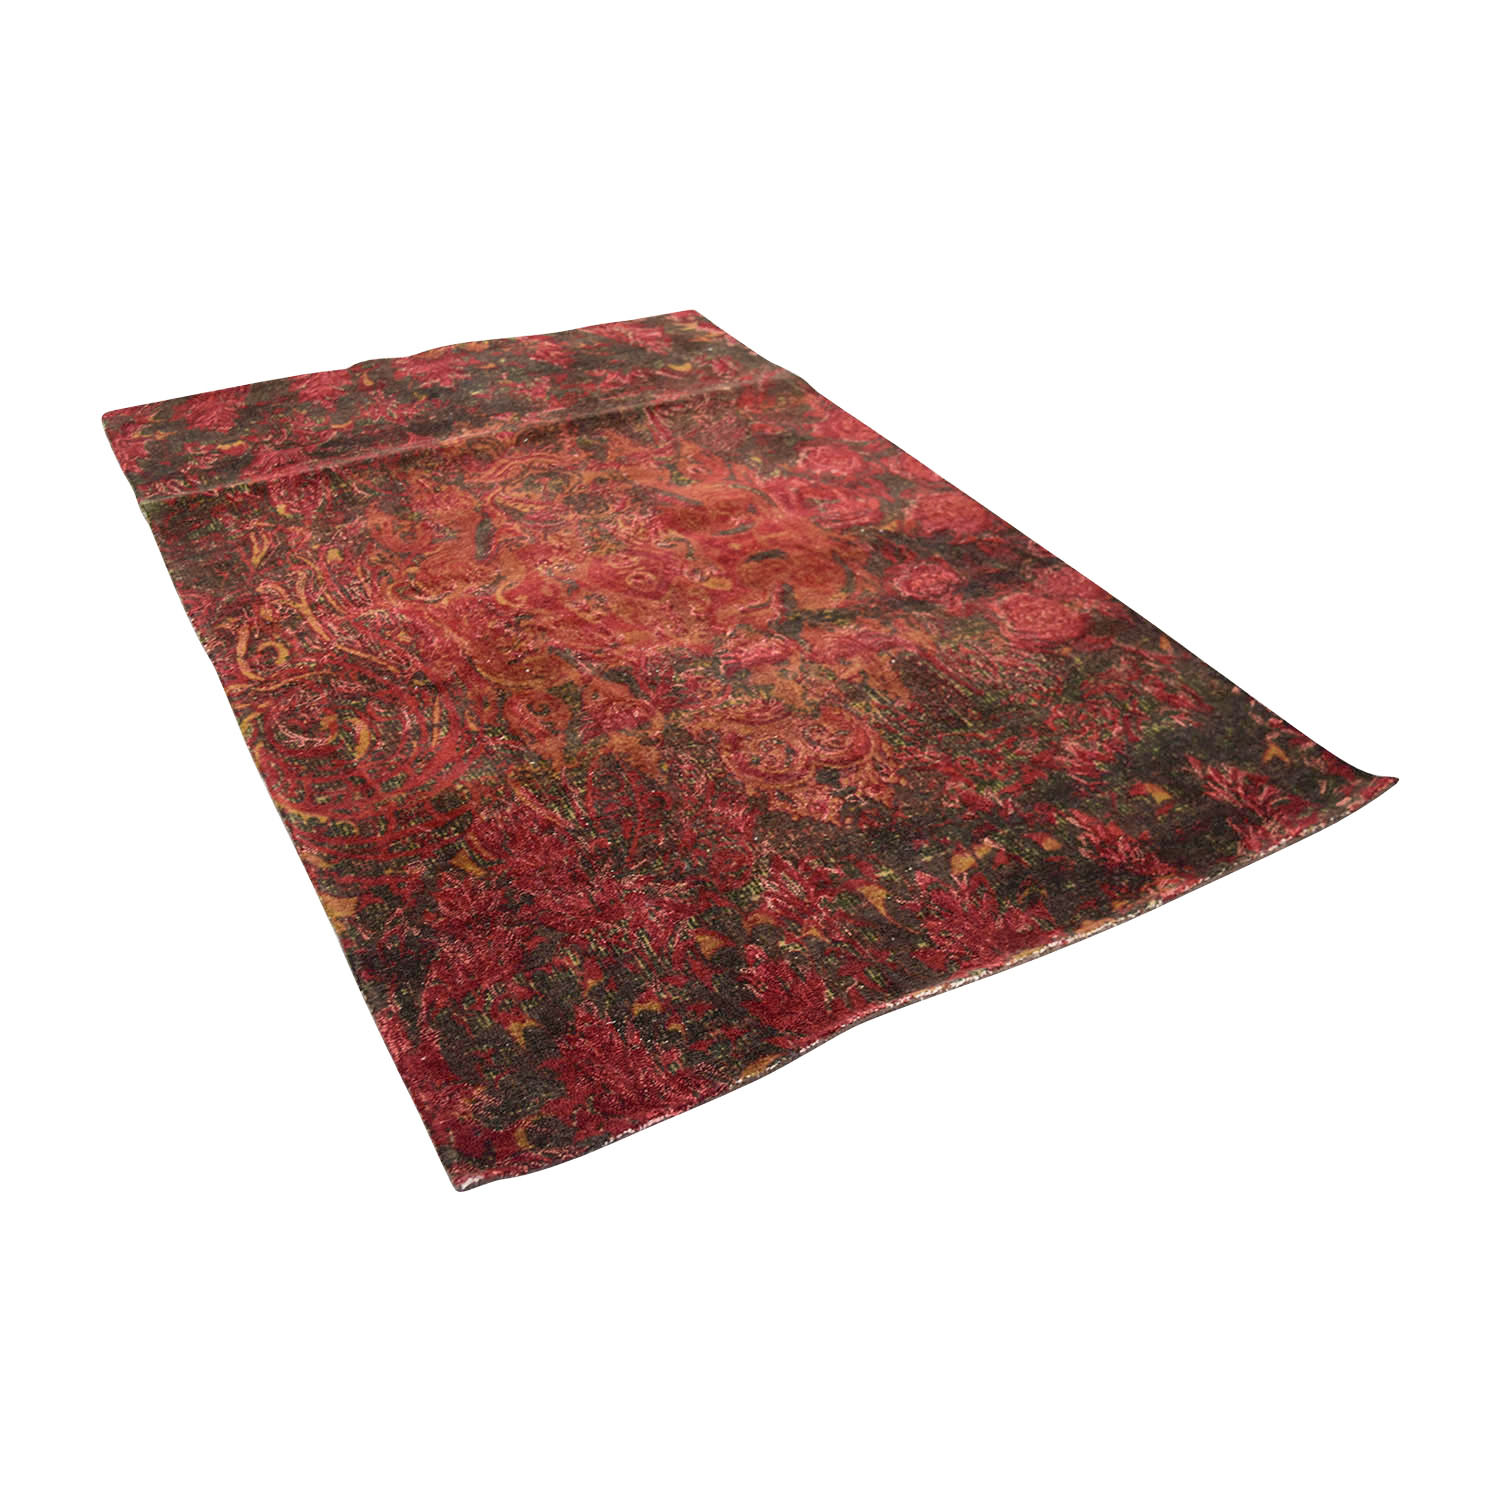 shop Obeetee 5 X 8 Red Mahira Wool Rug Obeetee Decor